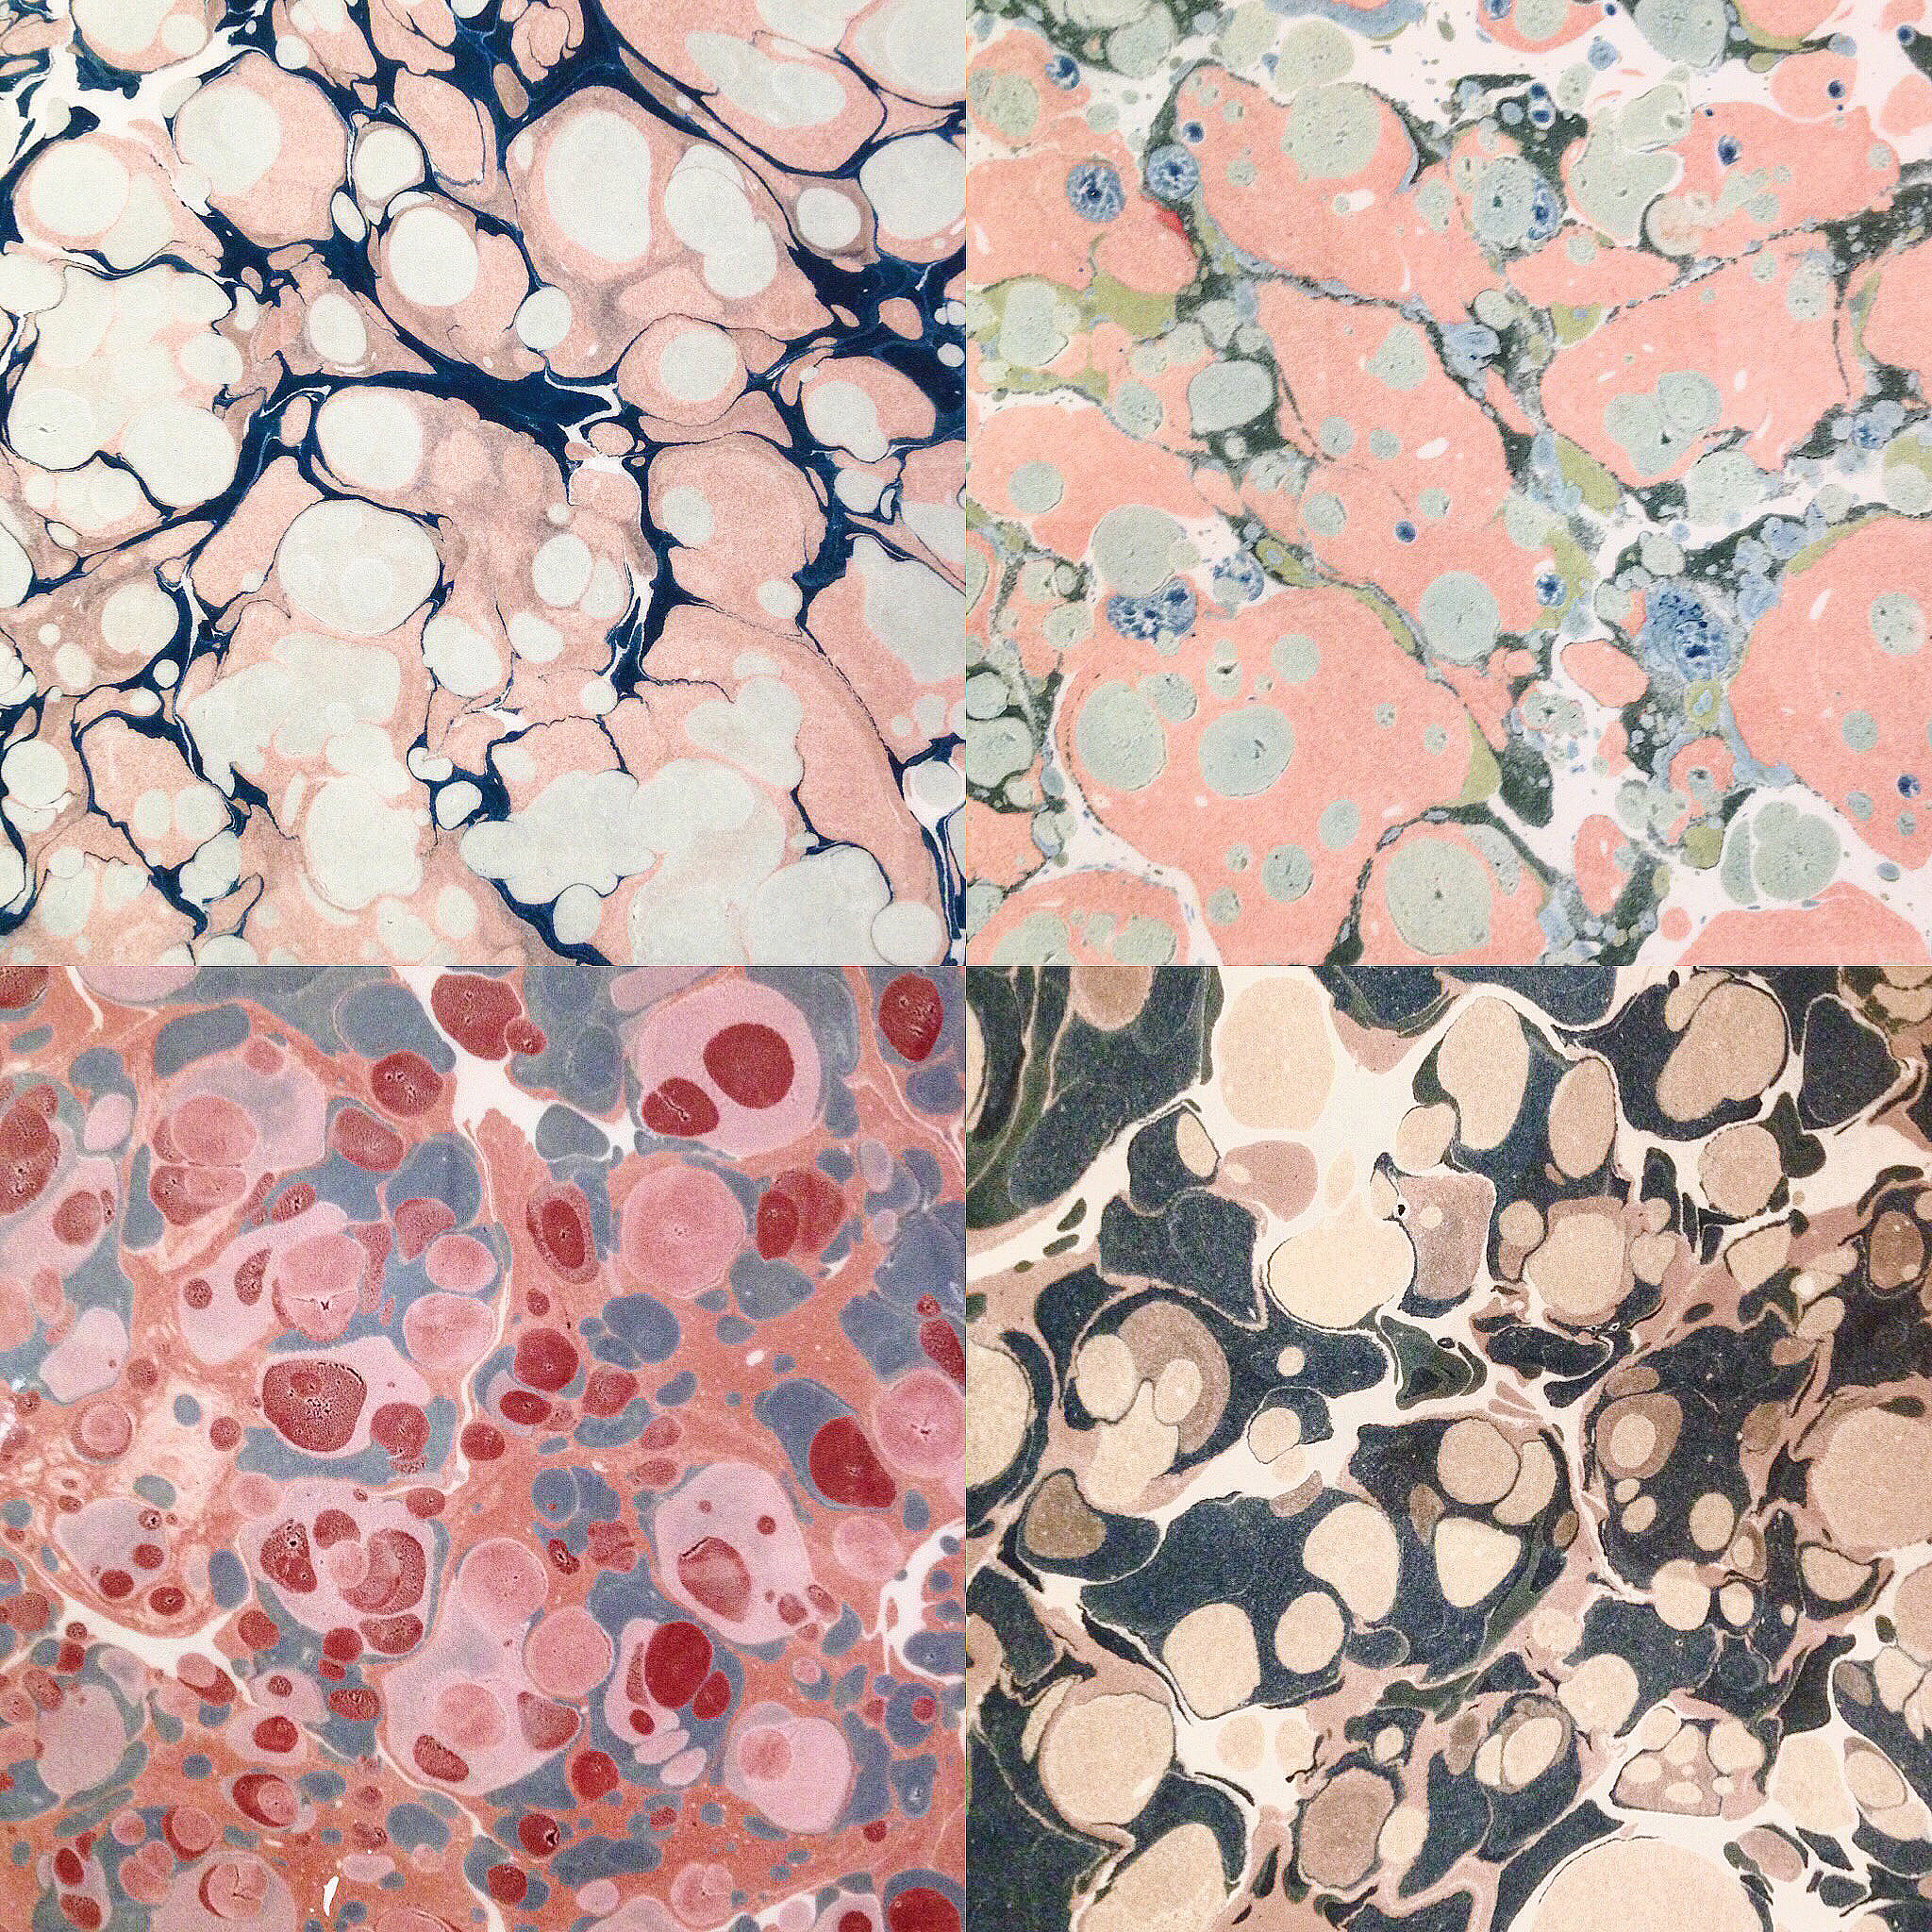 stone patterns from lake pigments